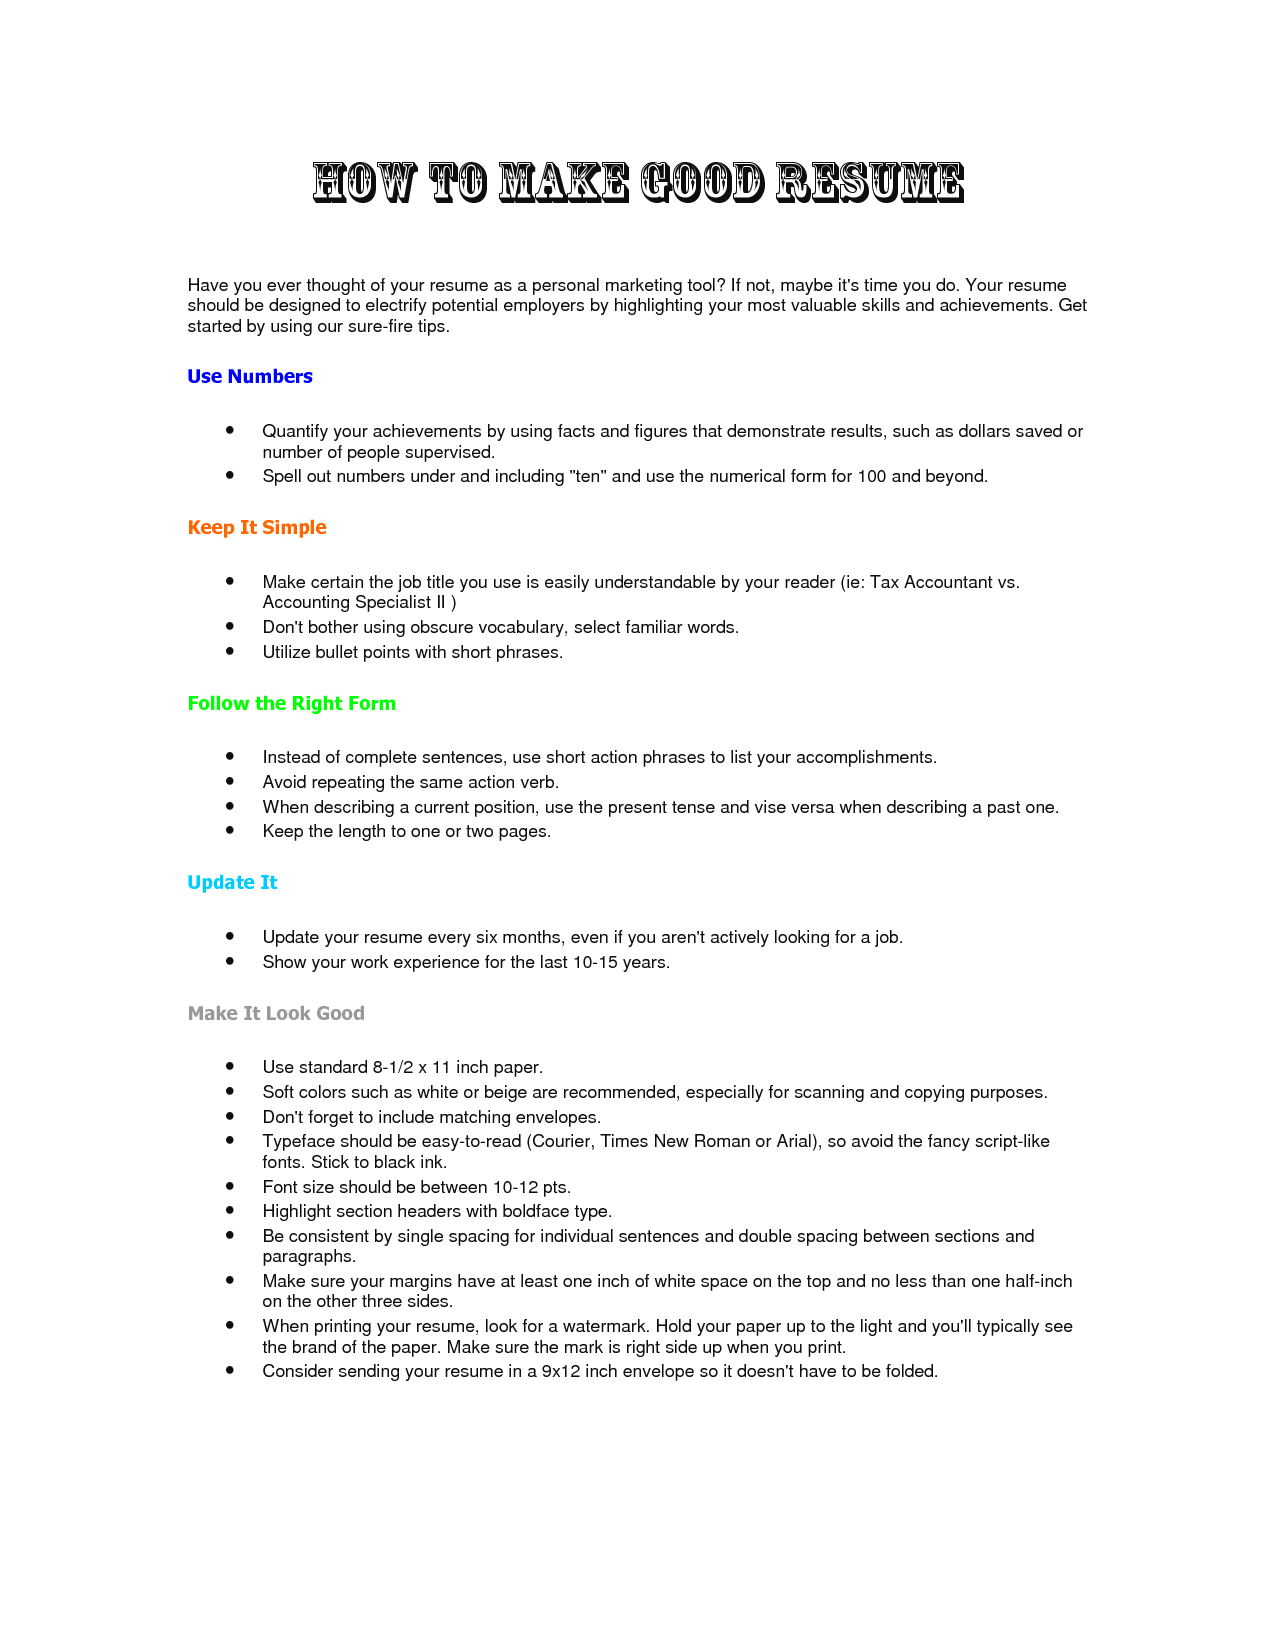 making good cv resume curriculum vitae making good cv resume cv resume and cover letter sample cv and resume resume seangarrettecohow